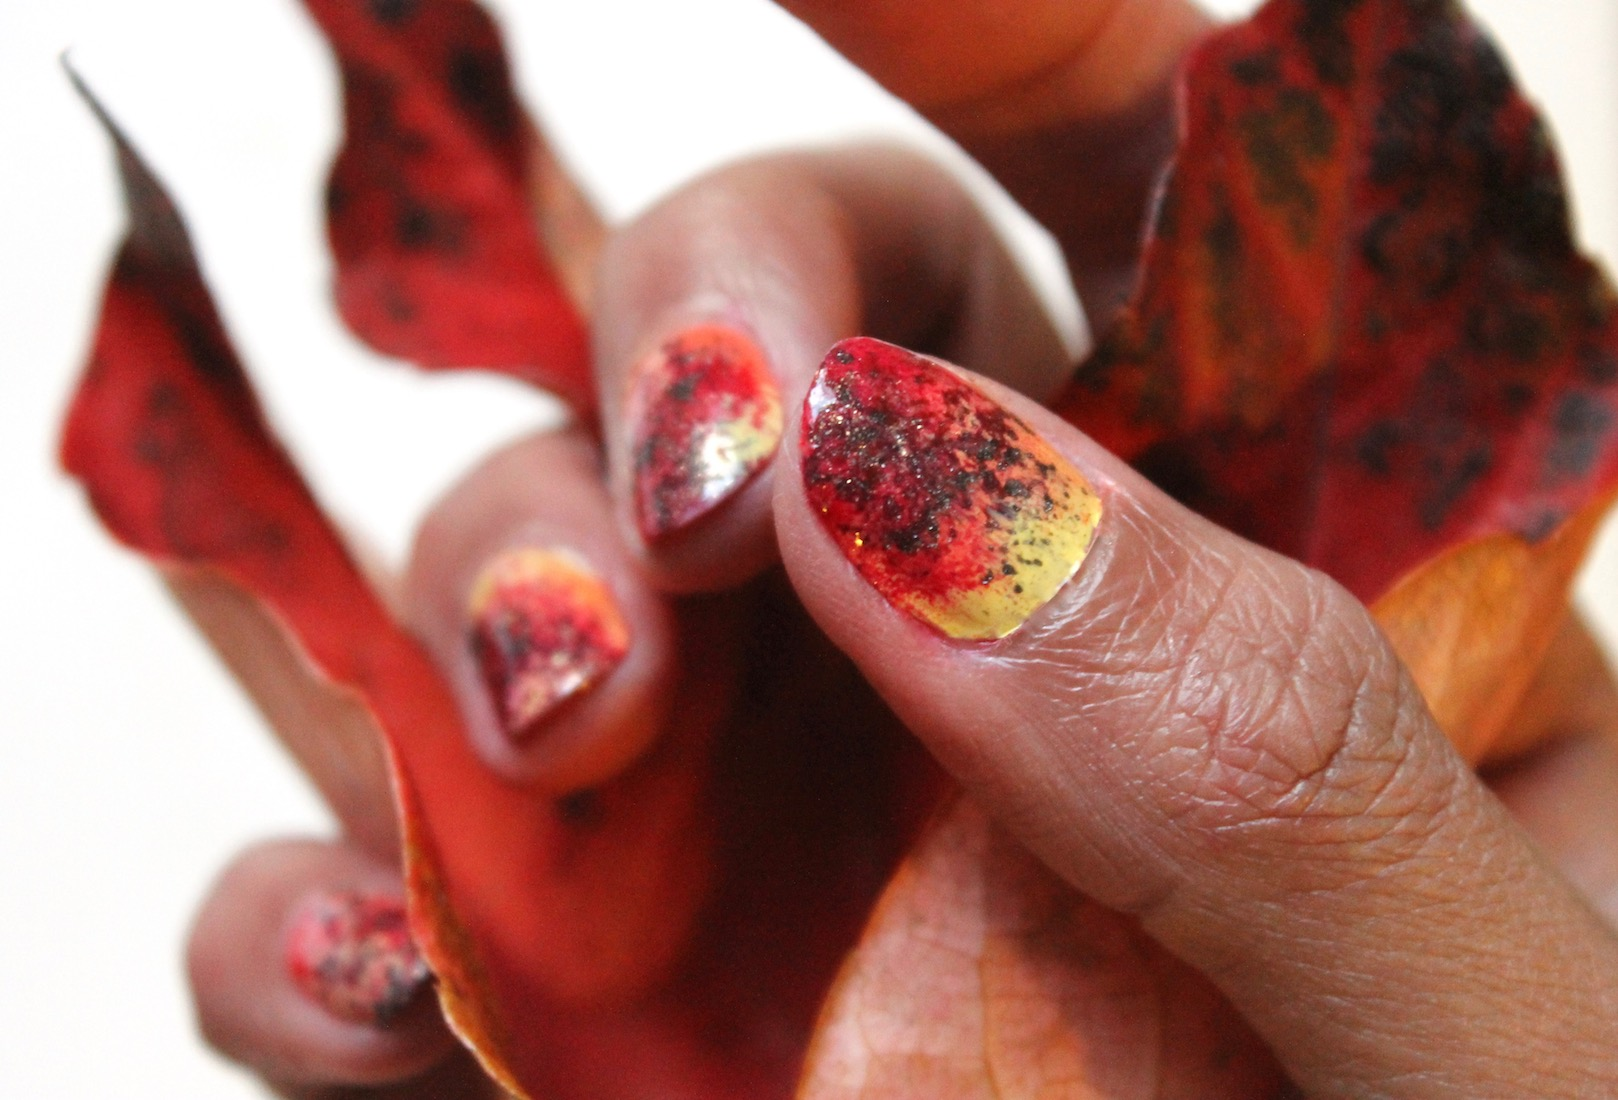 nail-art-feuille-automne-3